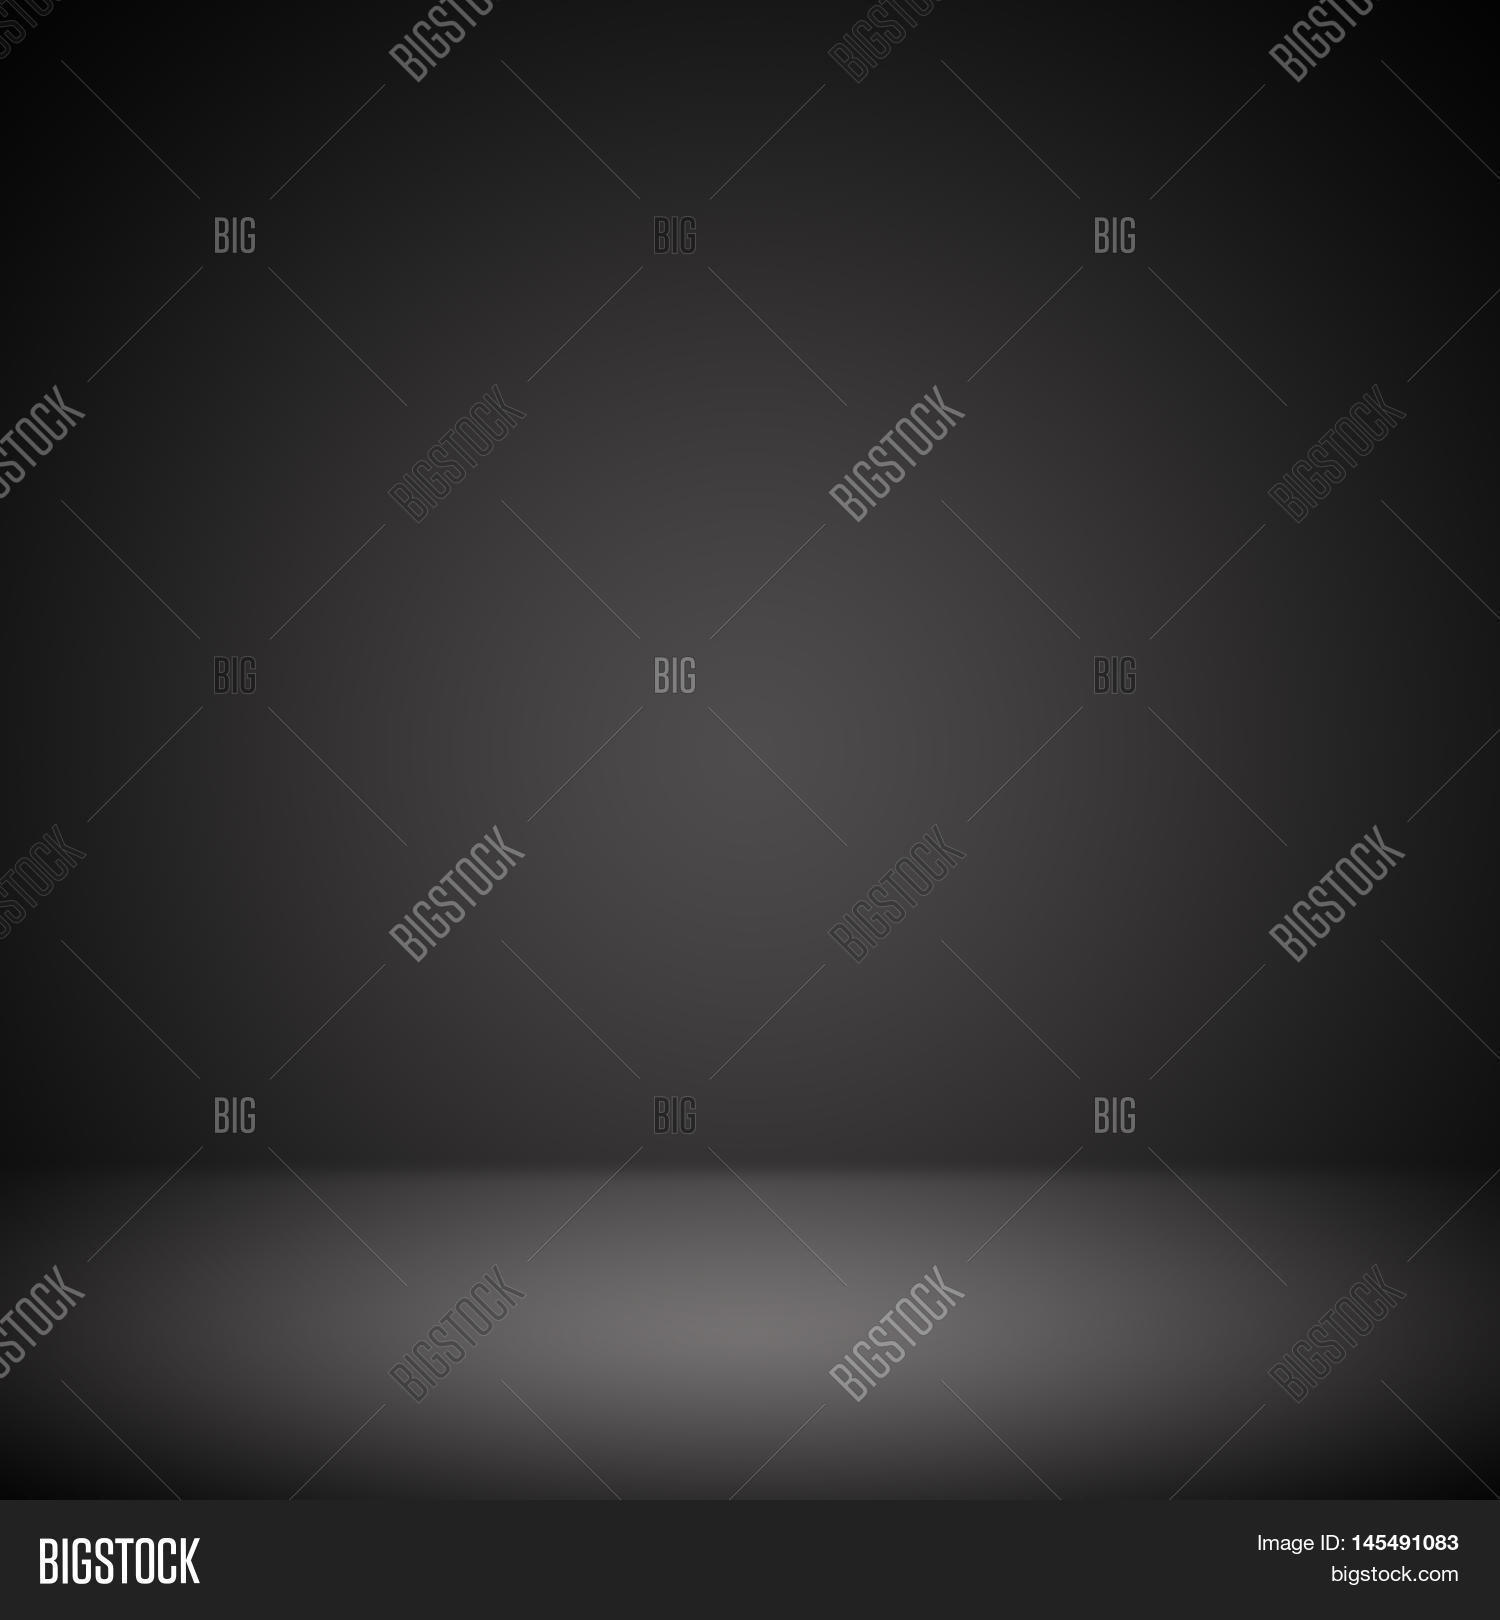 Black Gra nt Abstract Background Image &